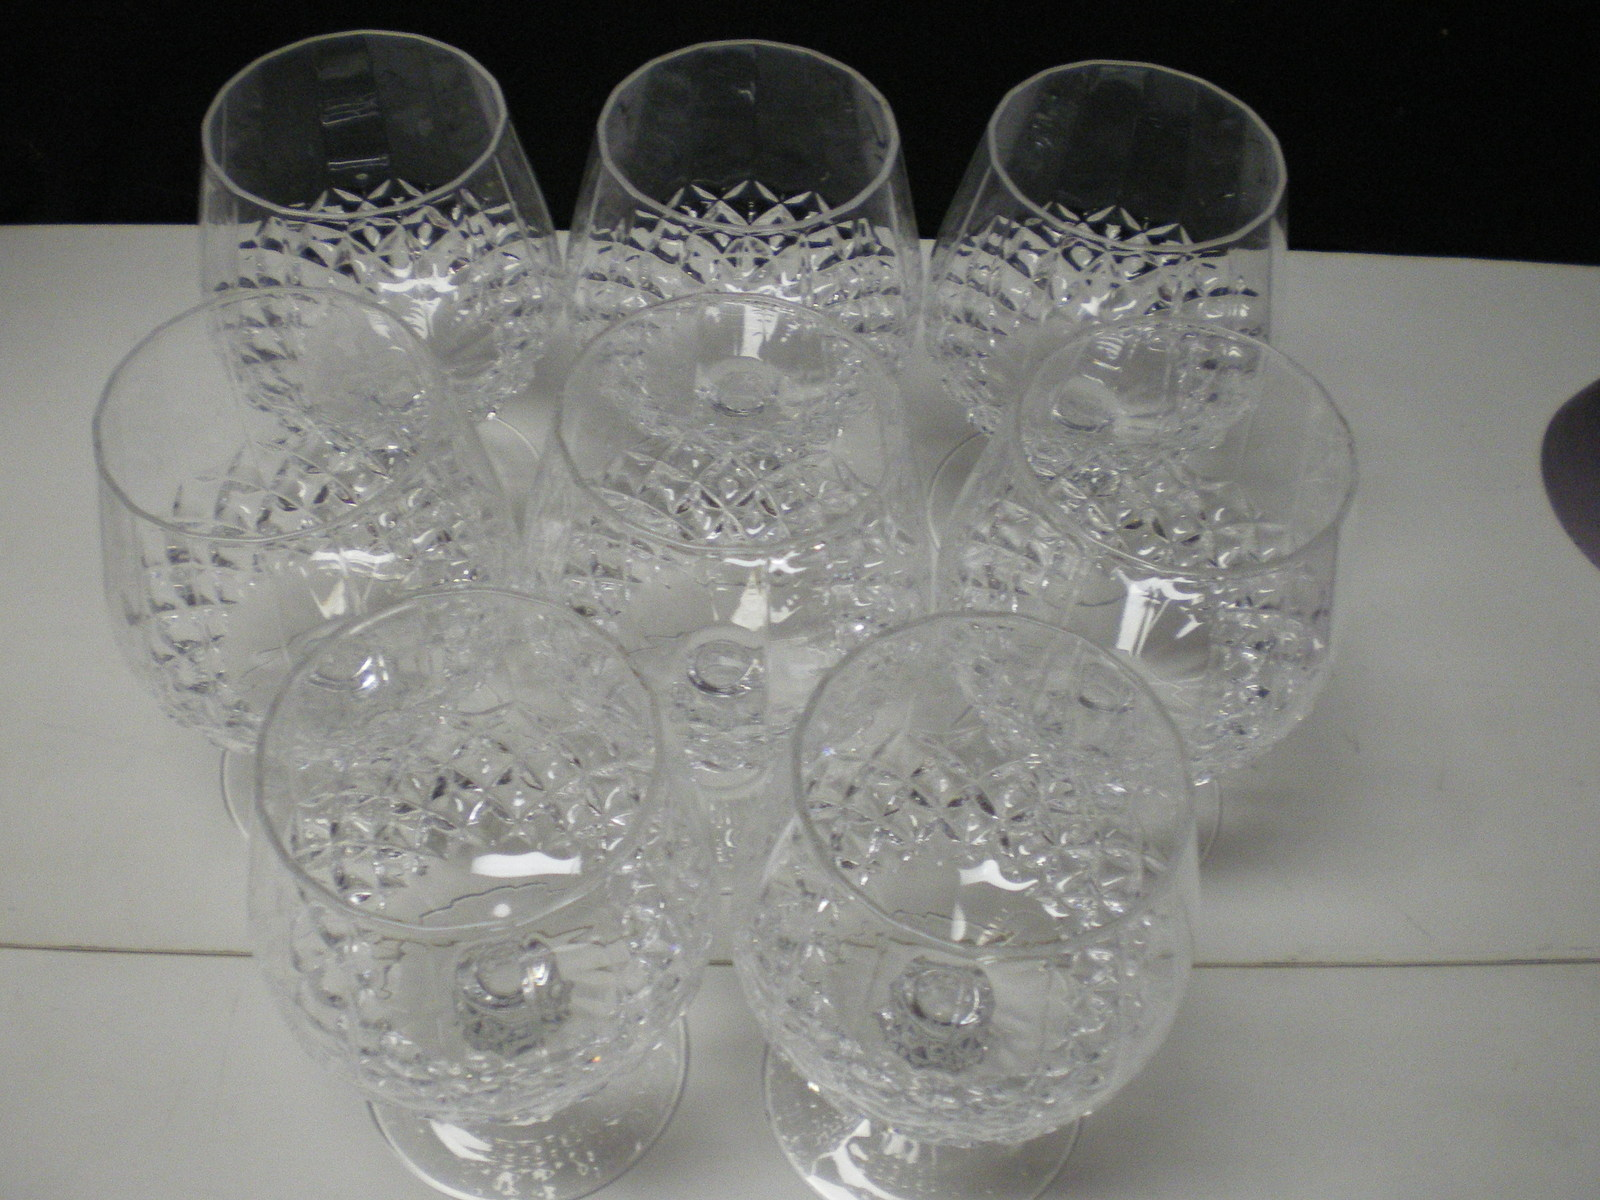 Primary image for 14 Cristal d'Arques Longchamp Brandy Snifters~~discontinued~~SET OF 15 BRANDIES